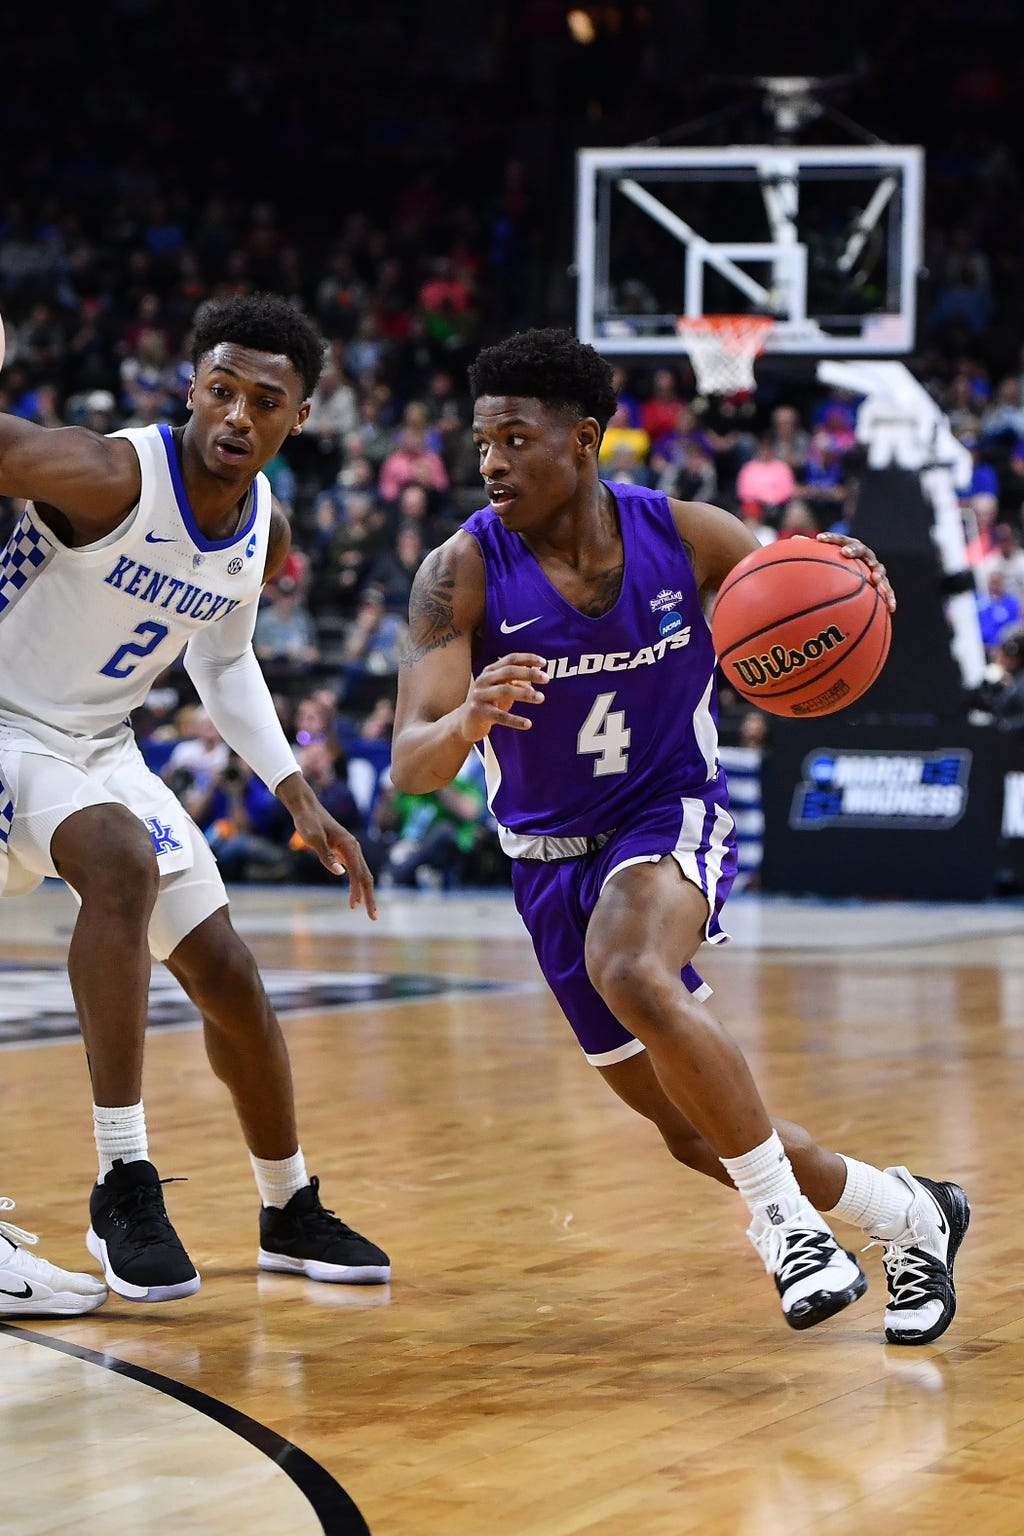 ACU guard Damien Daniels (4) dribbles the ball as Kentucky guard Ashton Hagans (2) defends during the first round of the 2019 NCAA tournament in Jacksonville. The Wildcats won the Southland Conference tournament to earn its first-ever birth to the Division I tournament in their first year of eligibility.